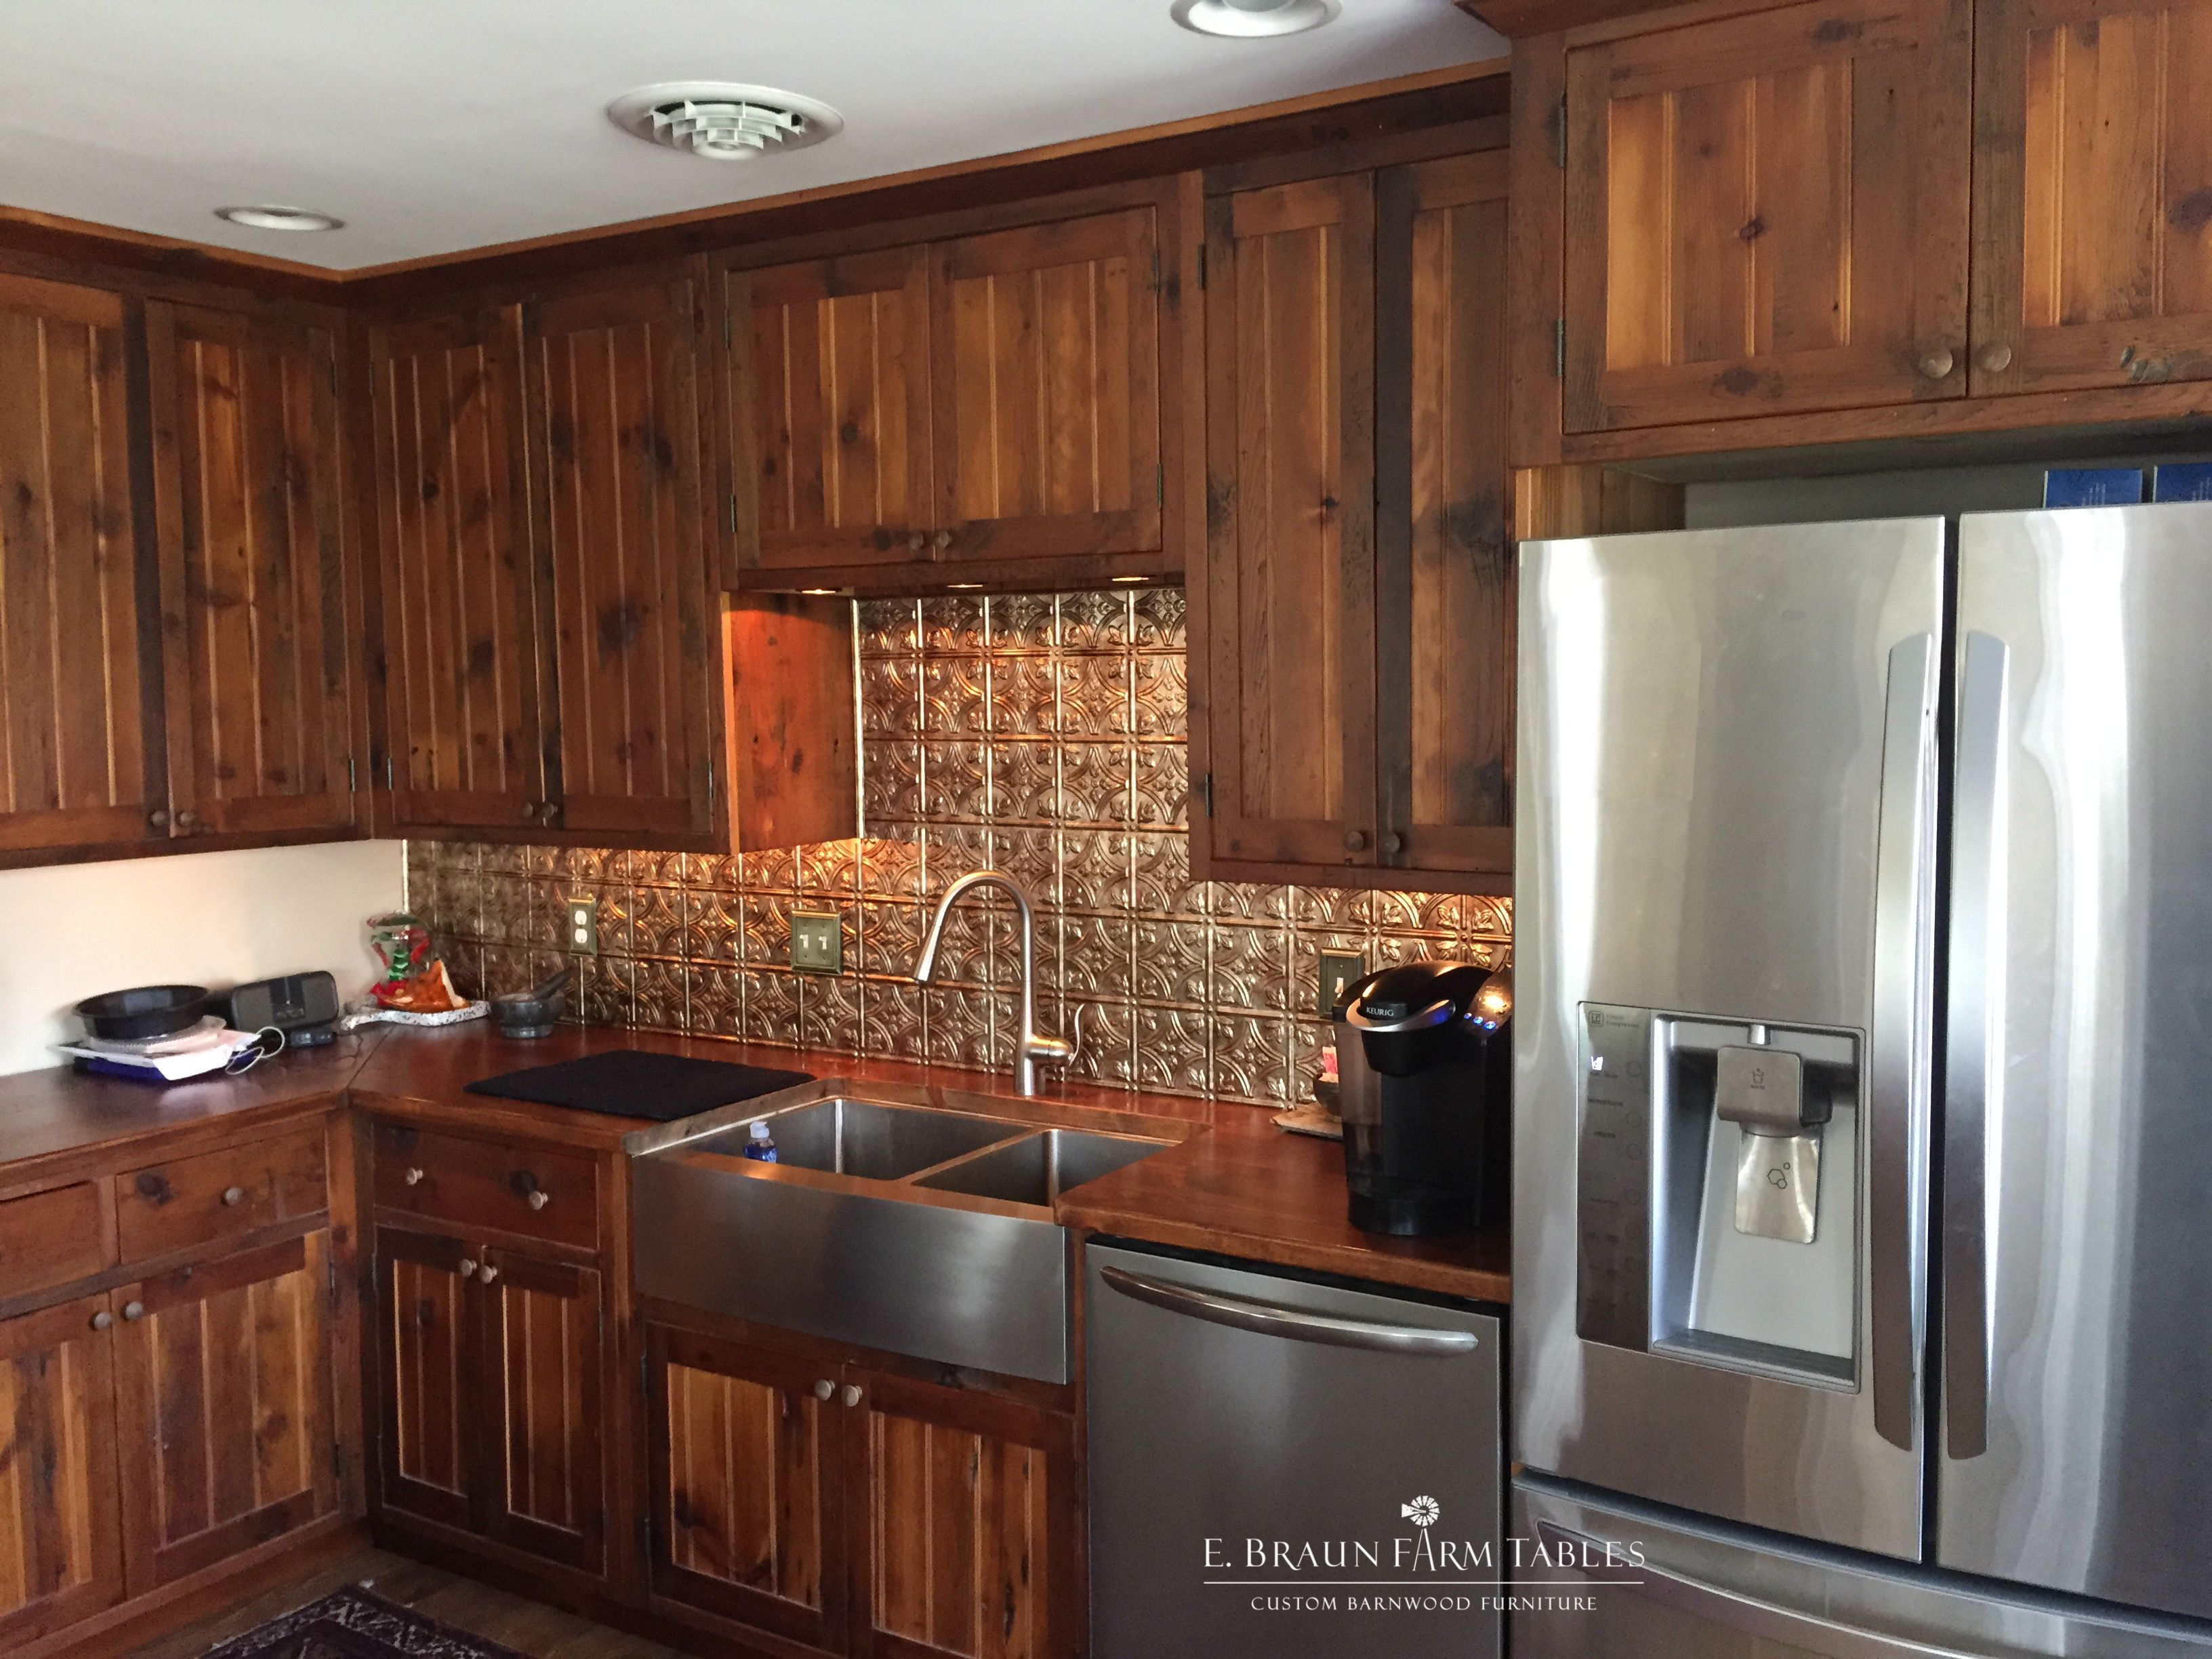 Exquisite custom kitchen with stunning made from